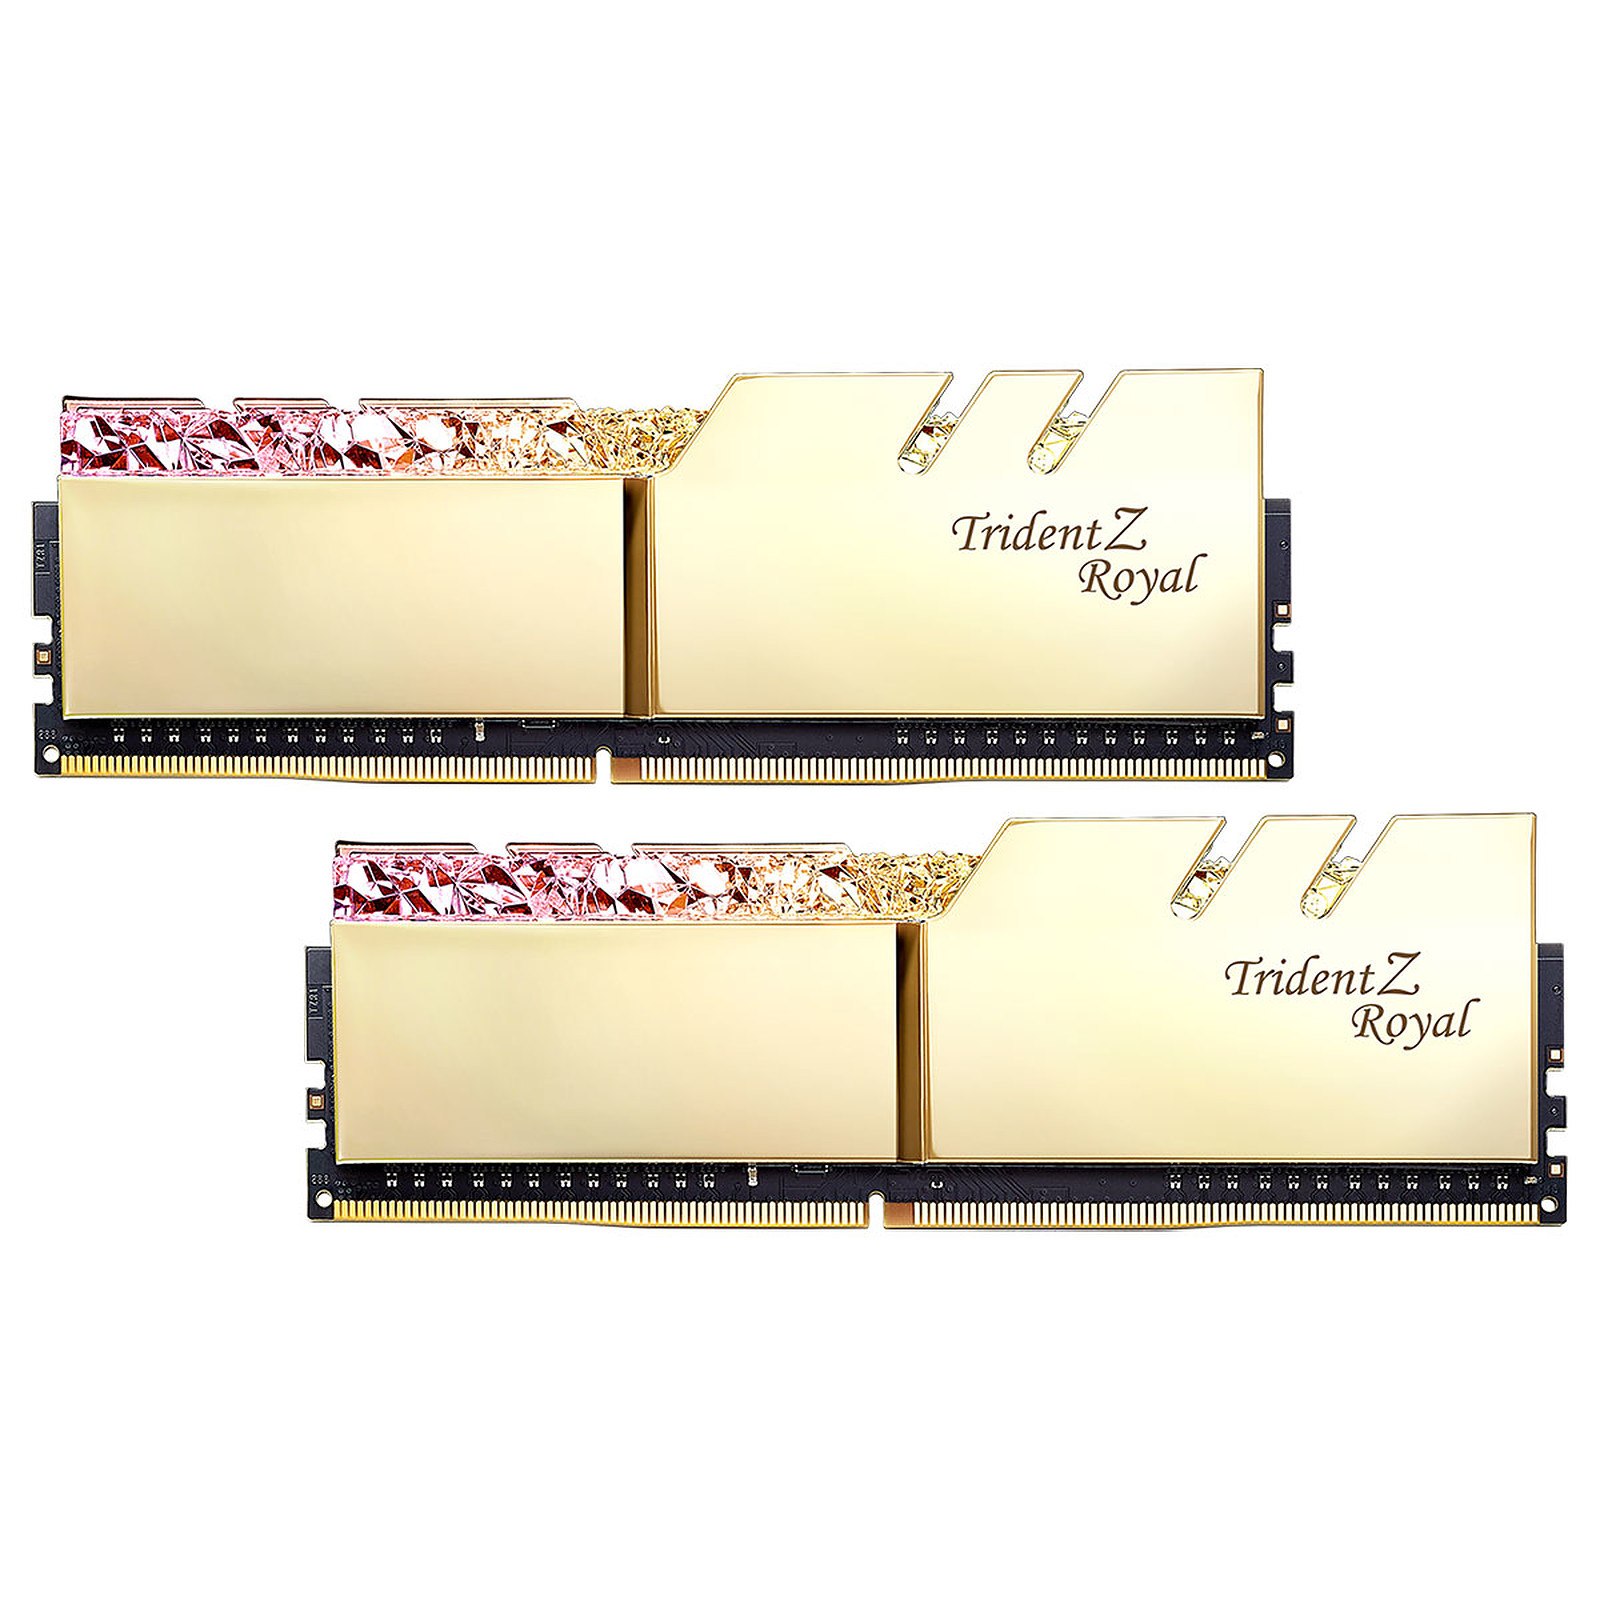 G.Skill Trident Z Royal 16 Go (2x 8 Go) DDR4 4266 MHz CL19 - Or